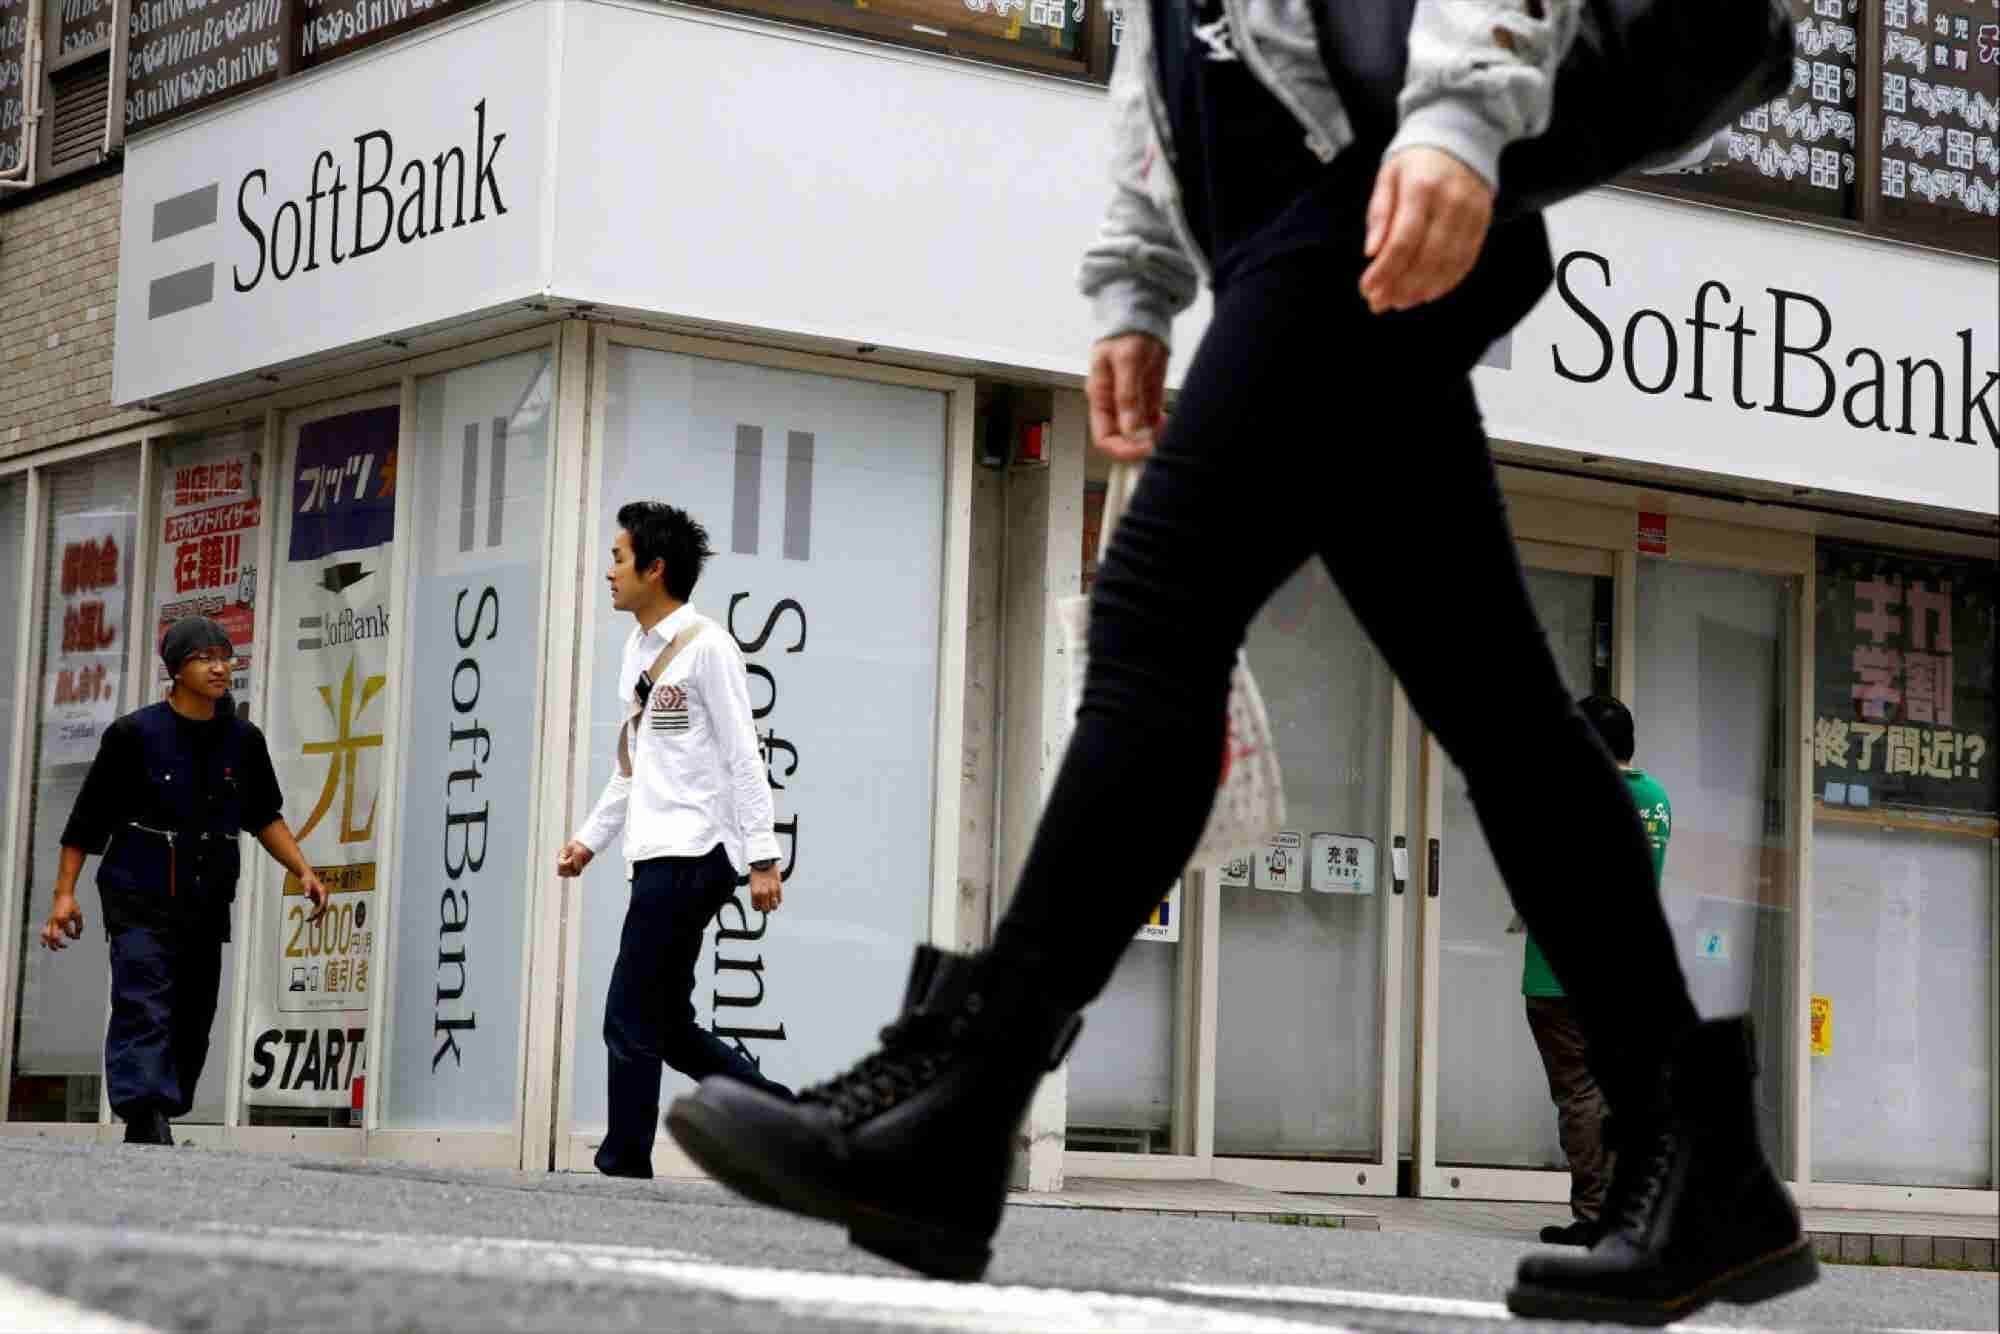 Saudi Arabia, SoftBank Aim to Be World's Top Tech Investor With $100 B...